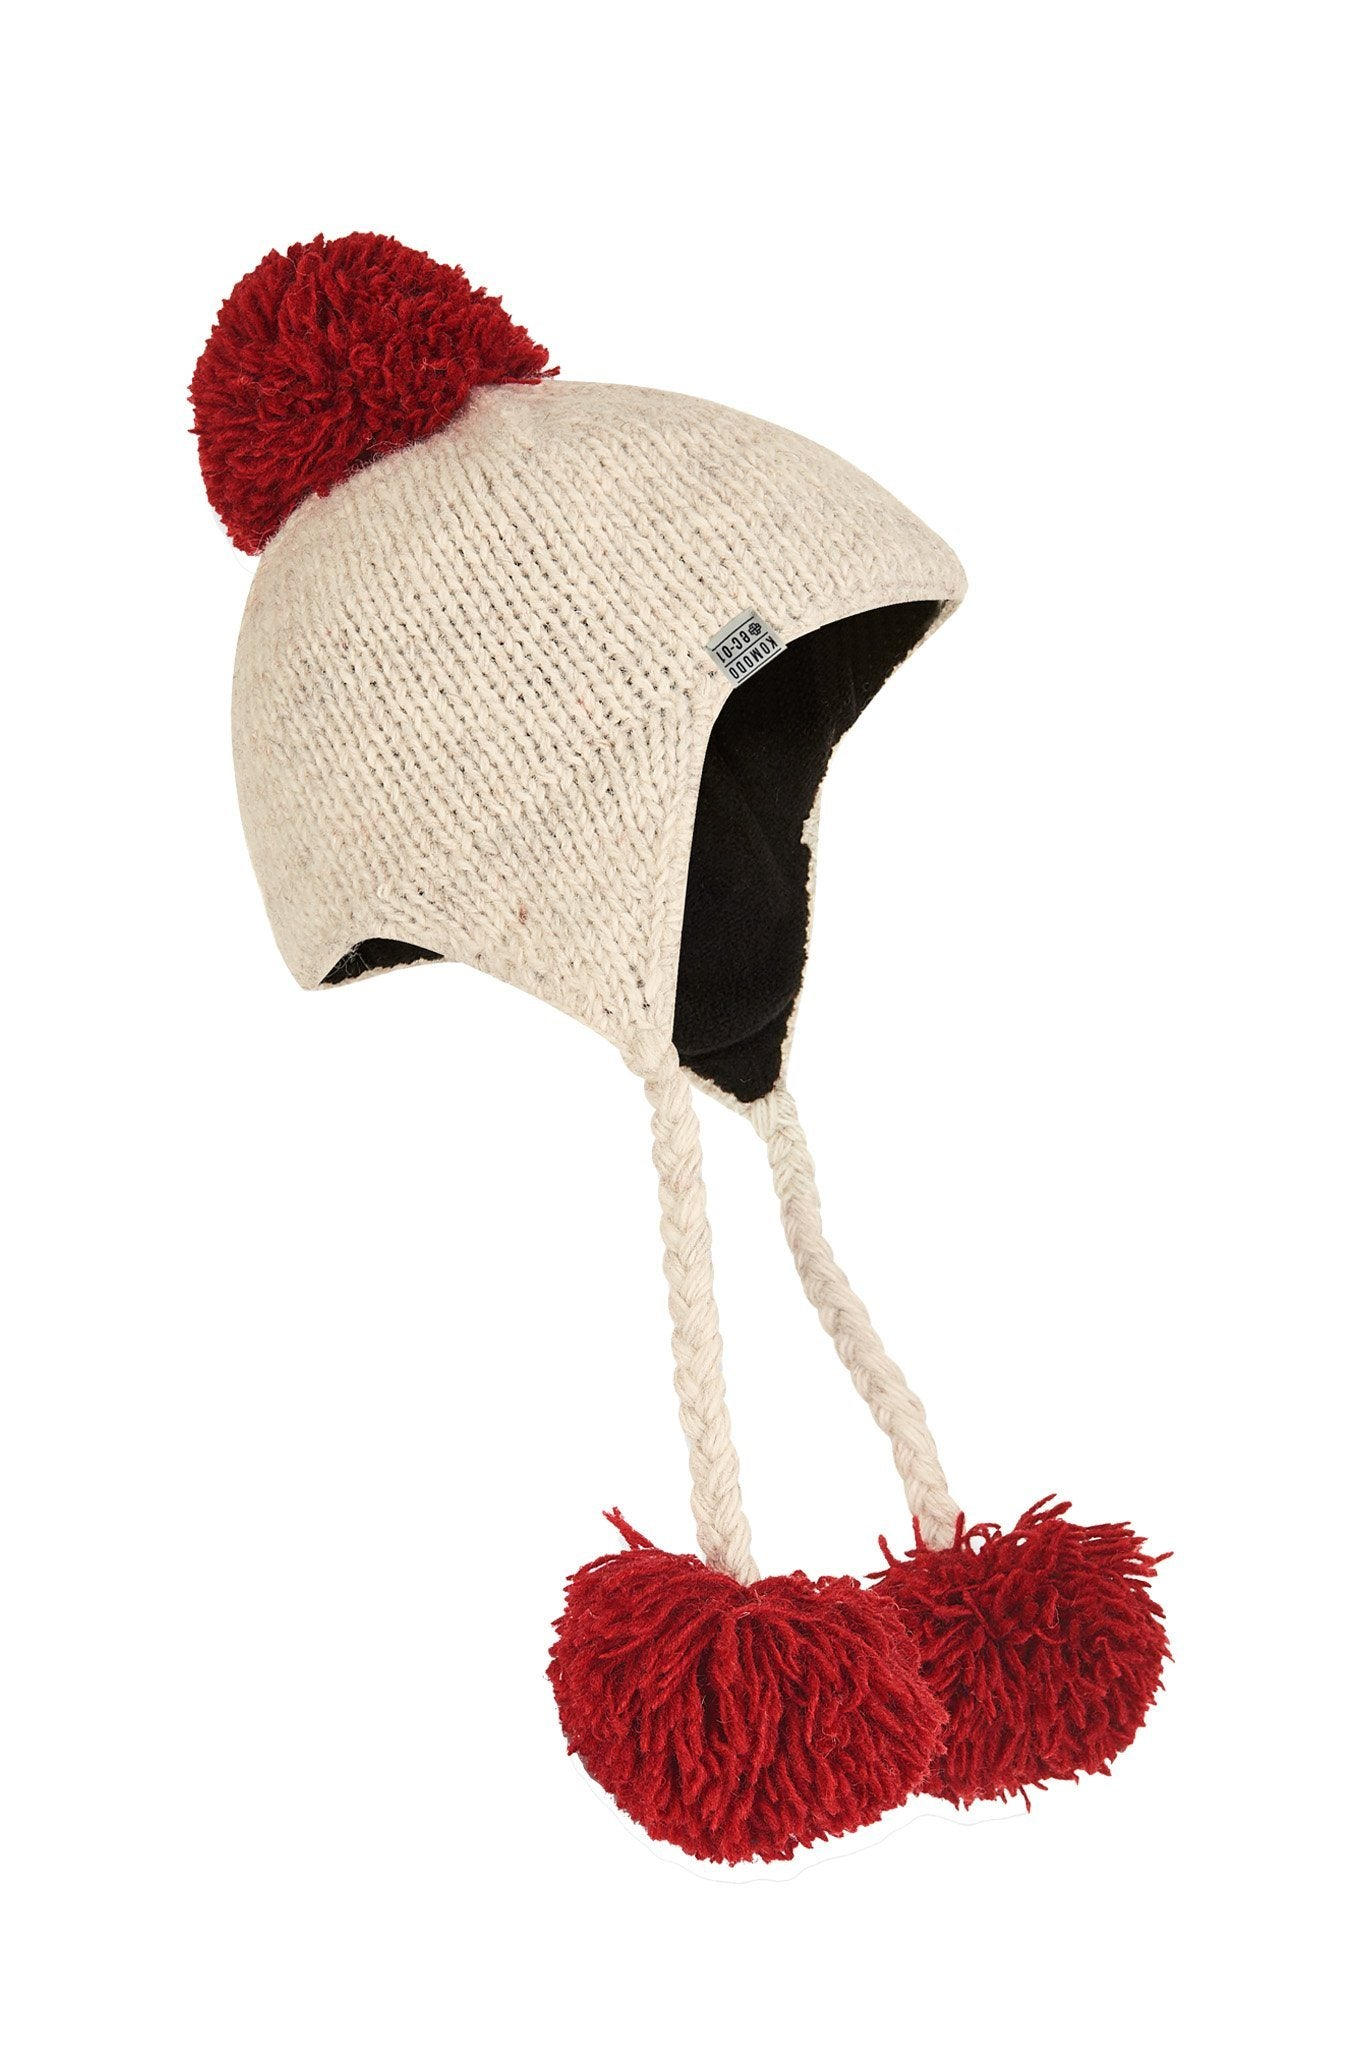 Accessories - ELO Recycled Wool Hat Oatmeal